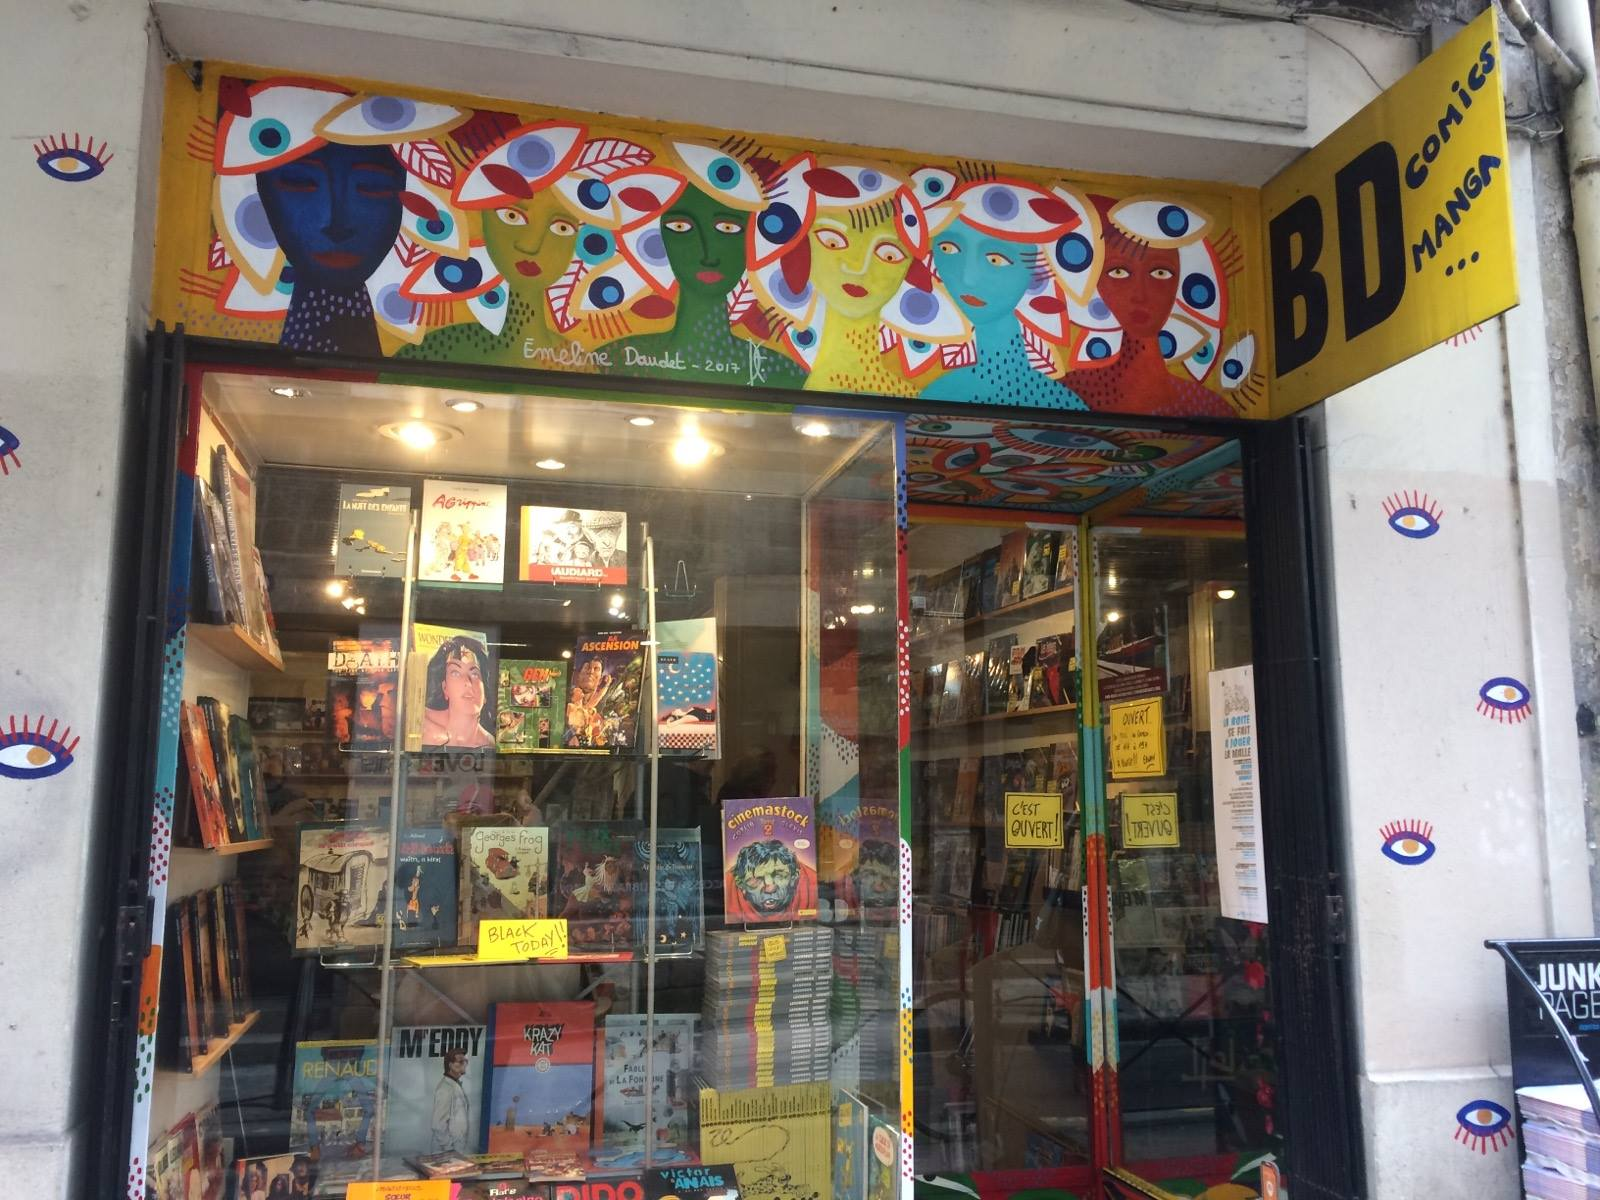 front comic book store DBD bordeaux france